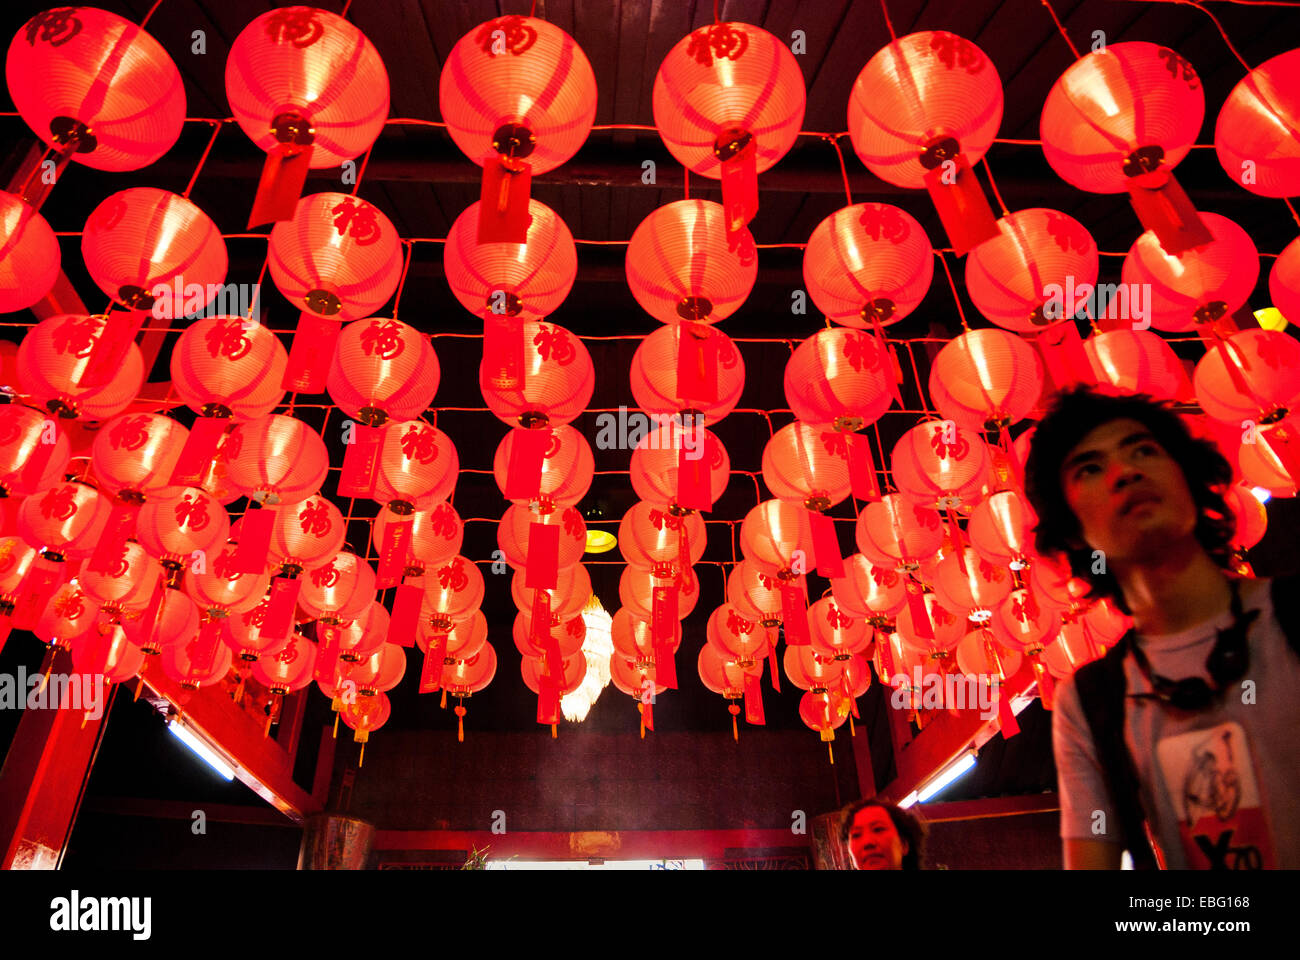 Man standing below red lanterns at Jin De Yuan temple, Jakarta, during the celebration of Chinese New Year. - Stock Image